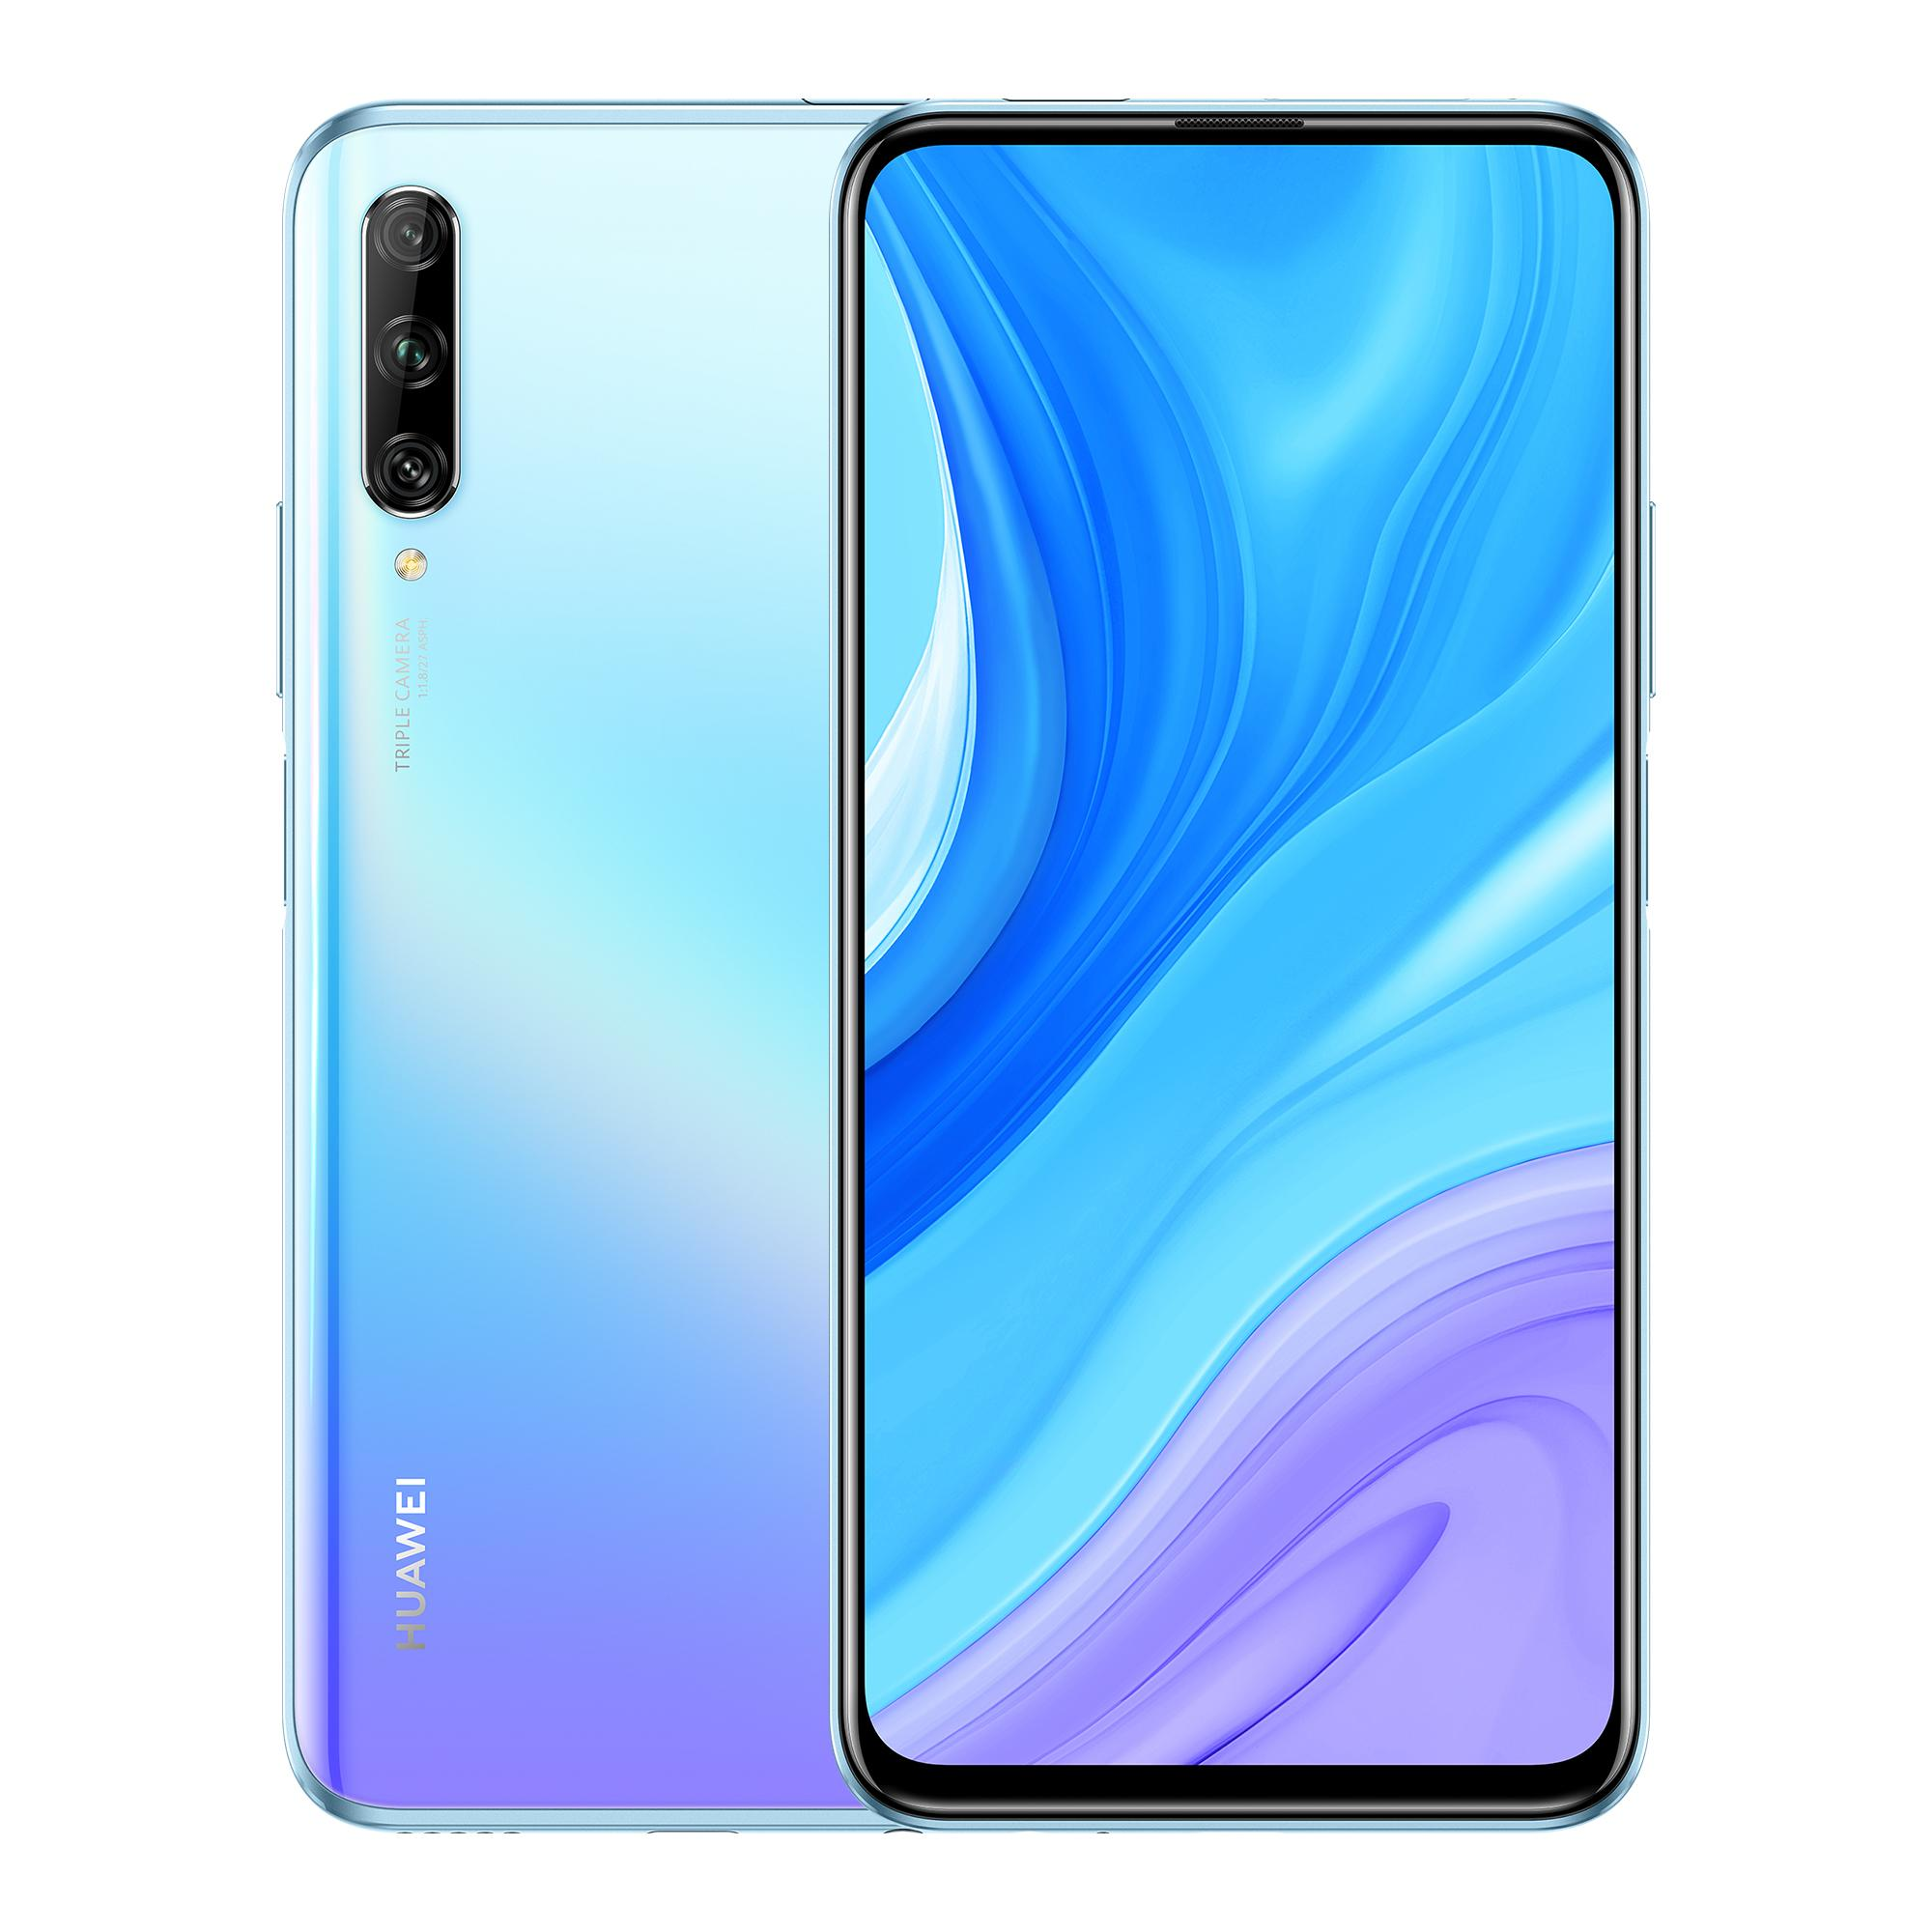 HUAWEI Y9s - 48 MP Triple AI Camera 6.59 FHD+ Display 6 GB + 128 GB ROM (With Free Power bank for First 100 Customers)